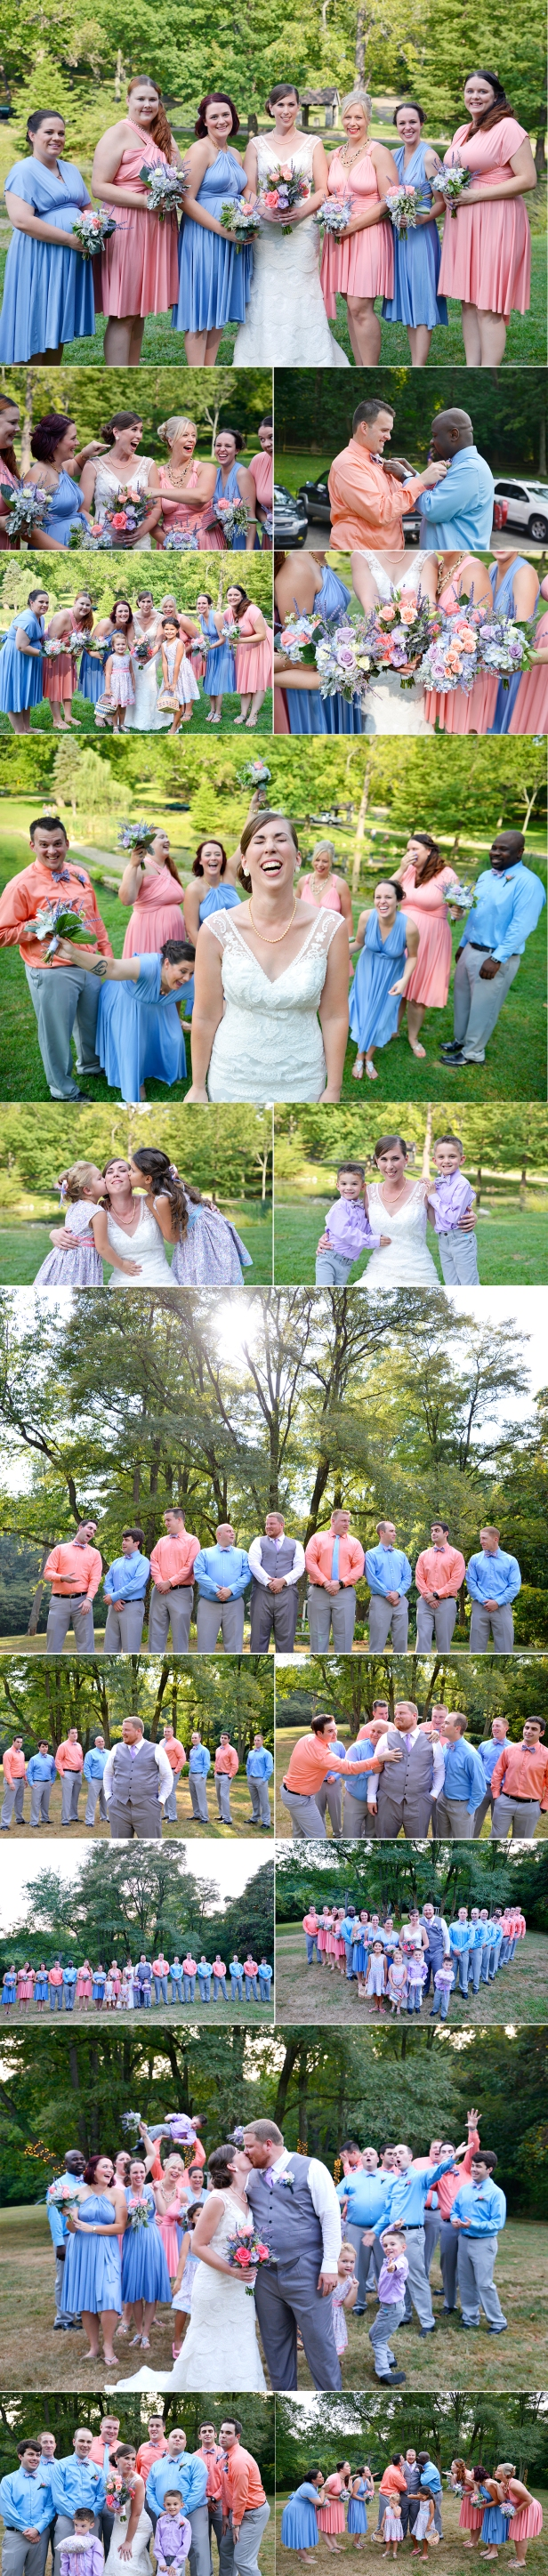 3 Rising park Lancaster Ohio bridal party